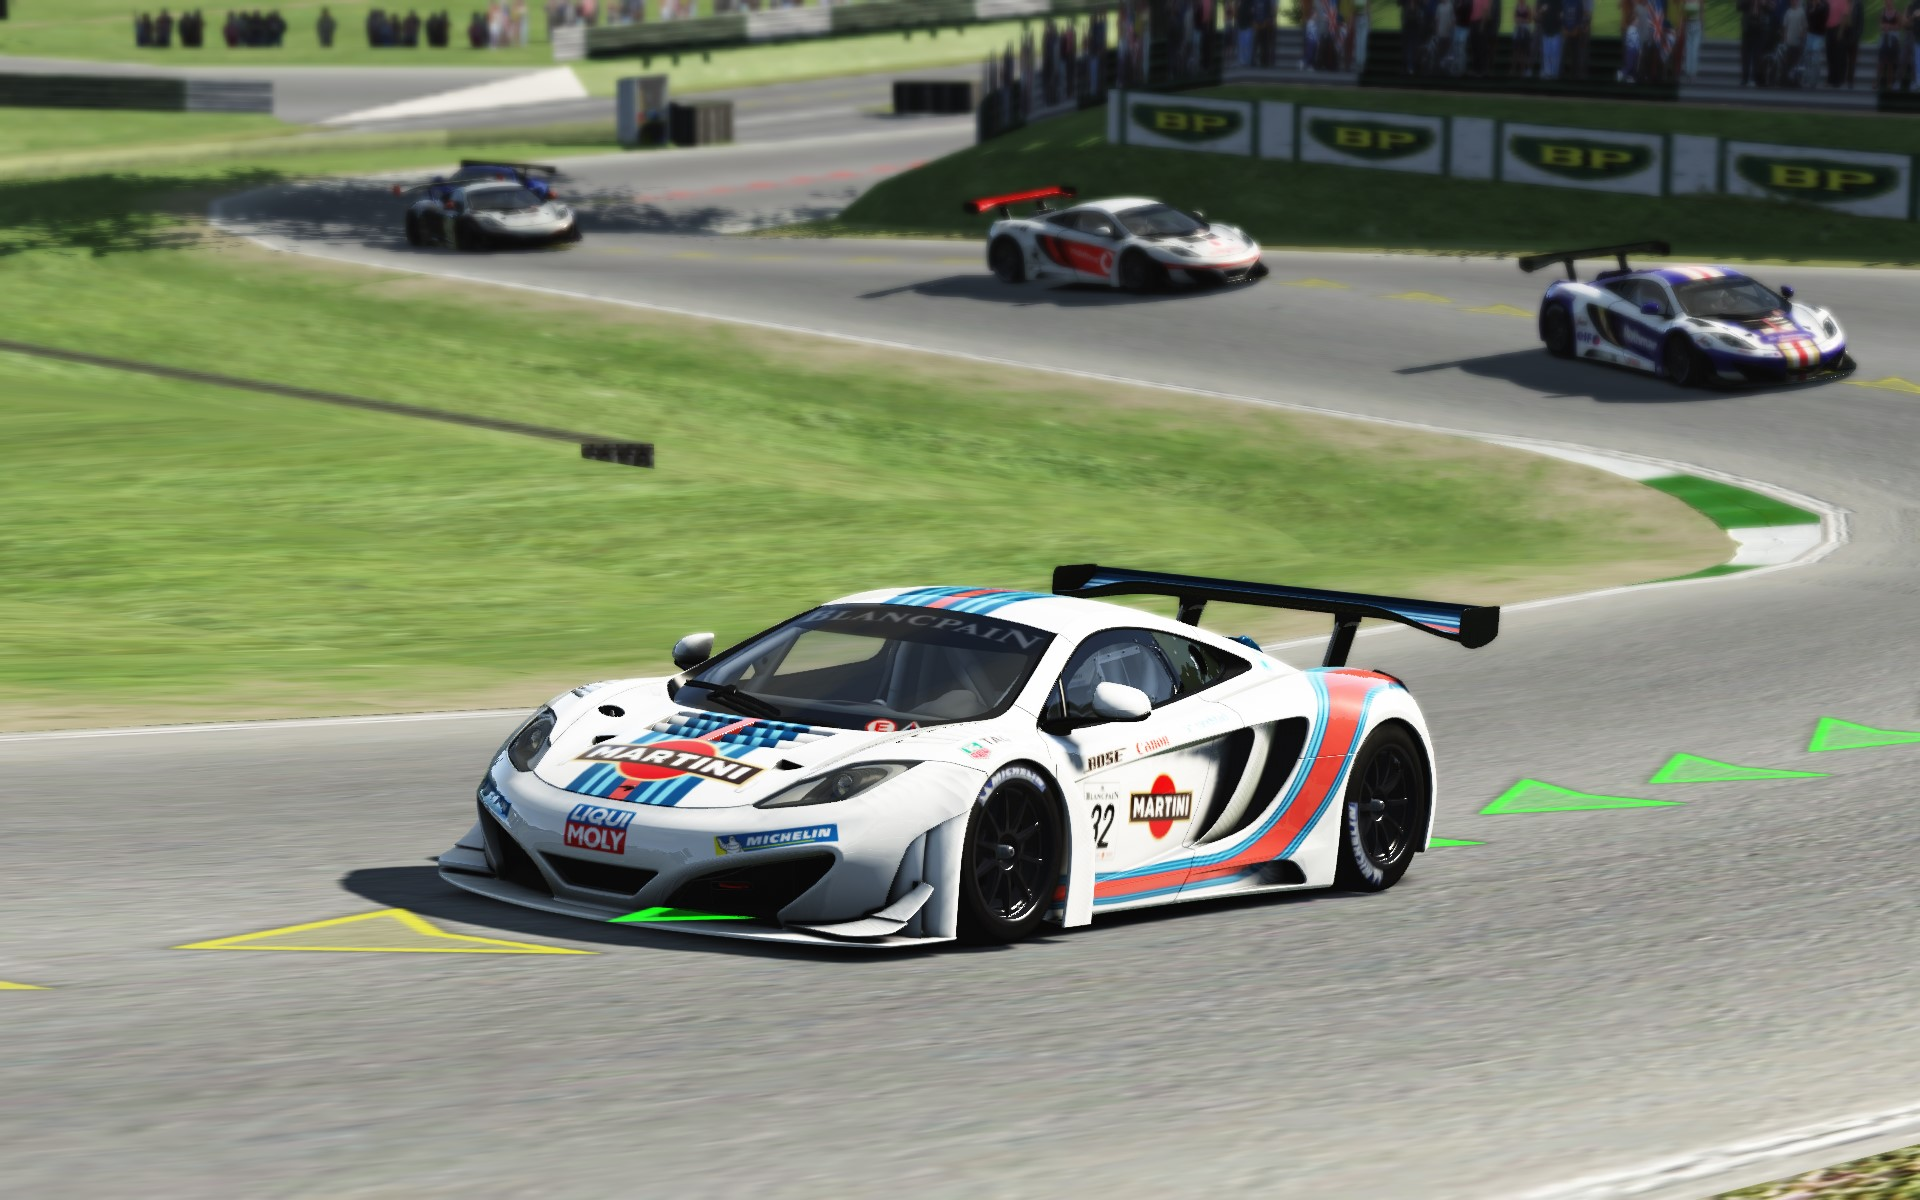 Screenshot_mclaren_mp412c_gt3_cadwell_21-6-115-15-25-43.jpg